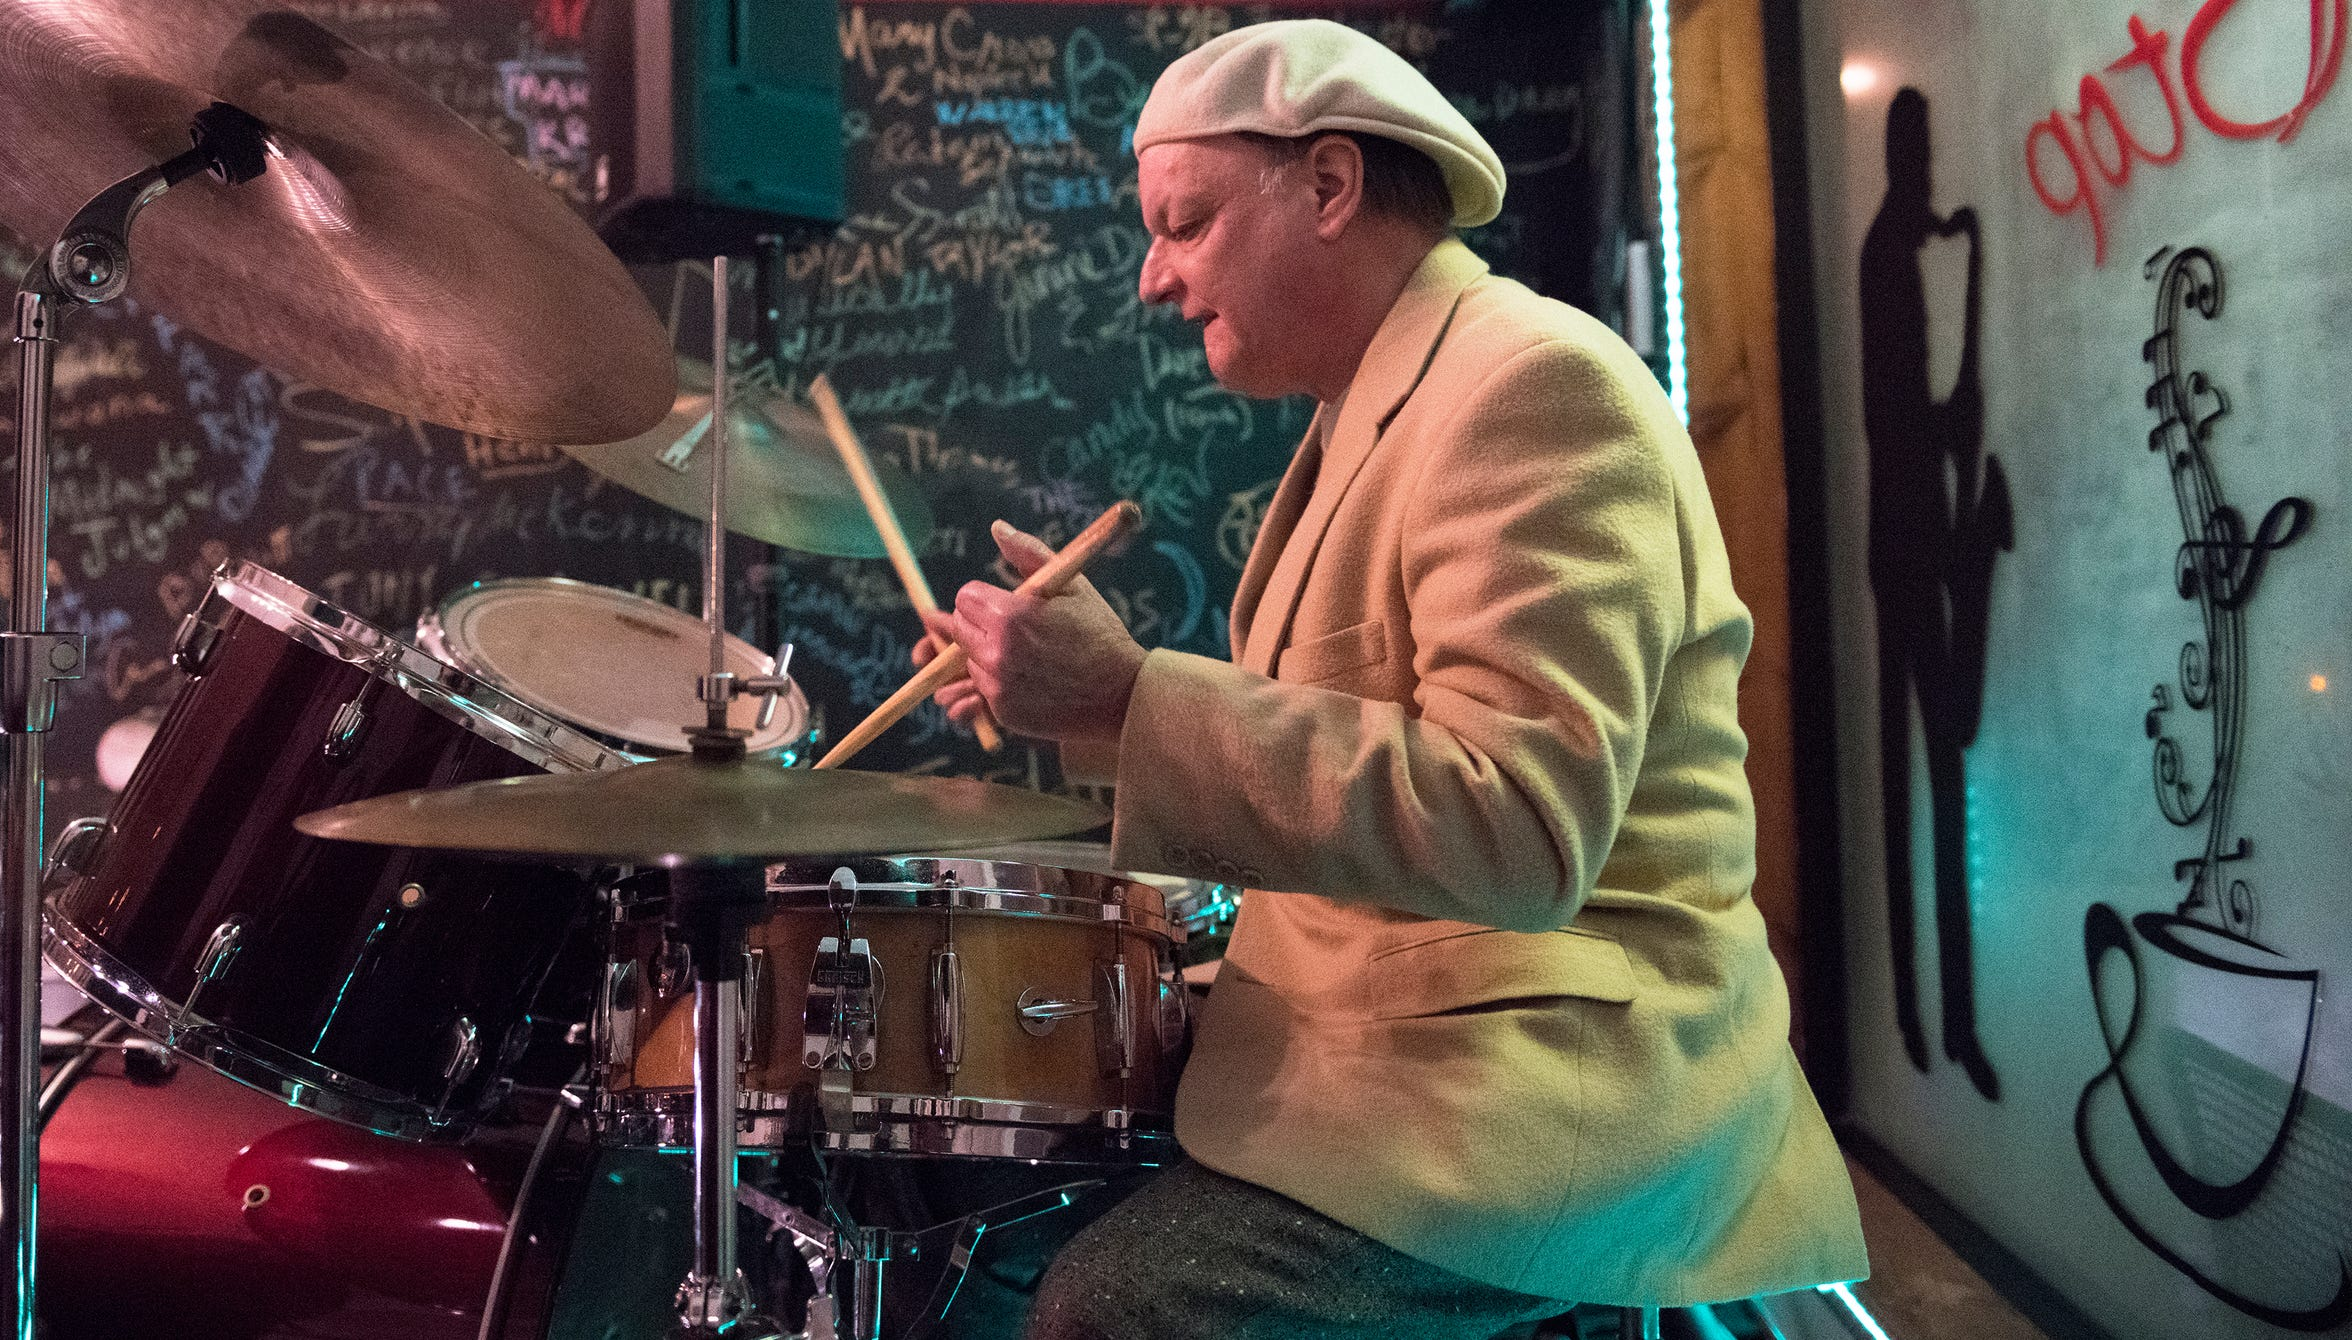 Jazz musician Jim Kaufmann of Atlantic City performs at the May the Jazz Never Stop Jazz Cafe in Haddon Heights.